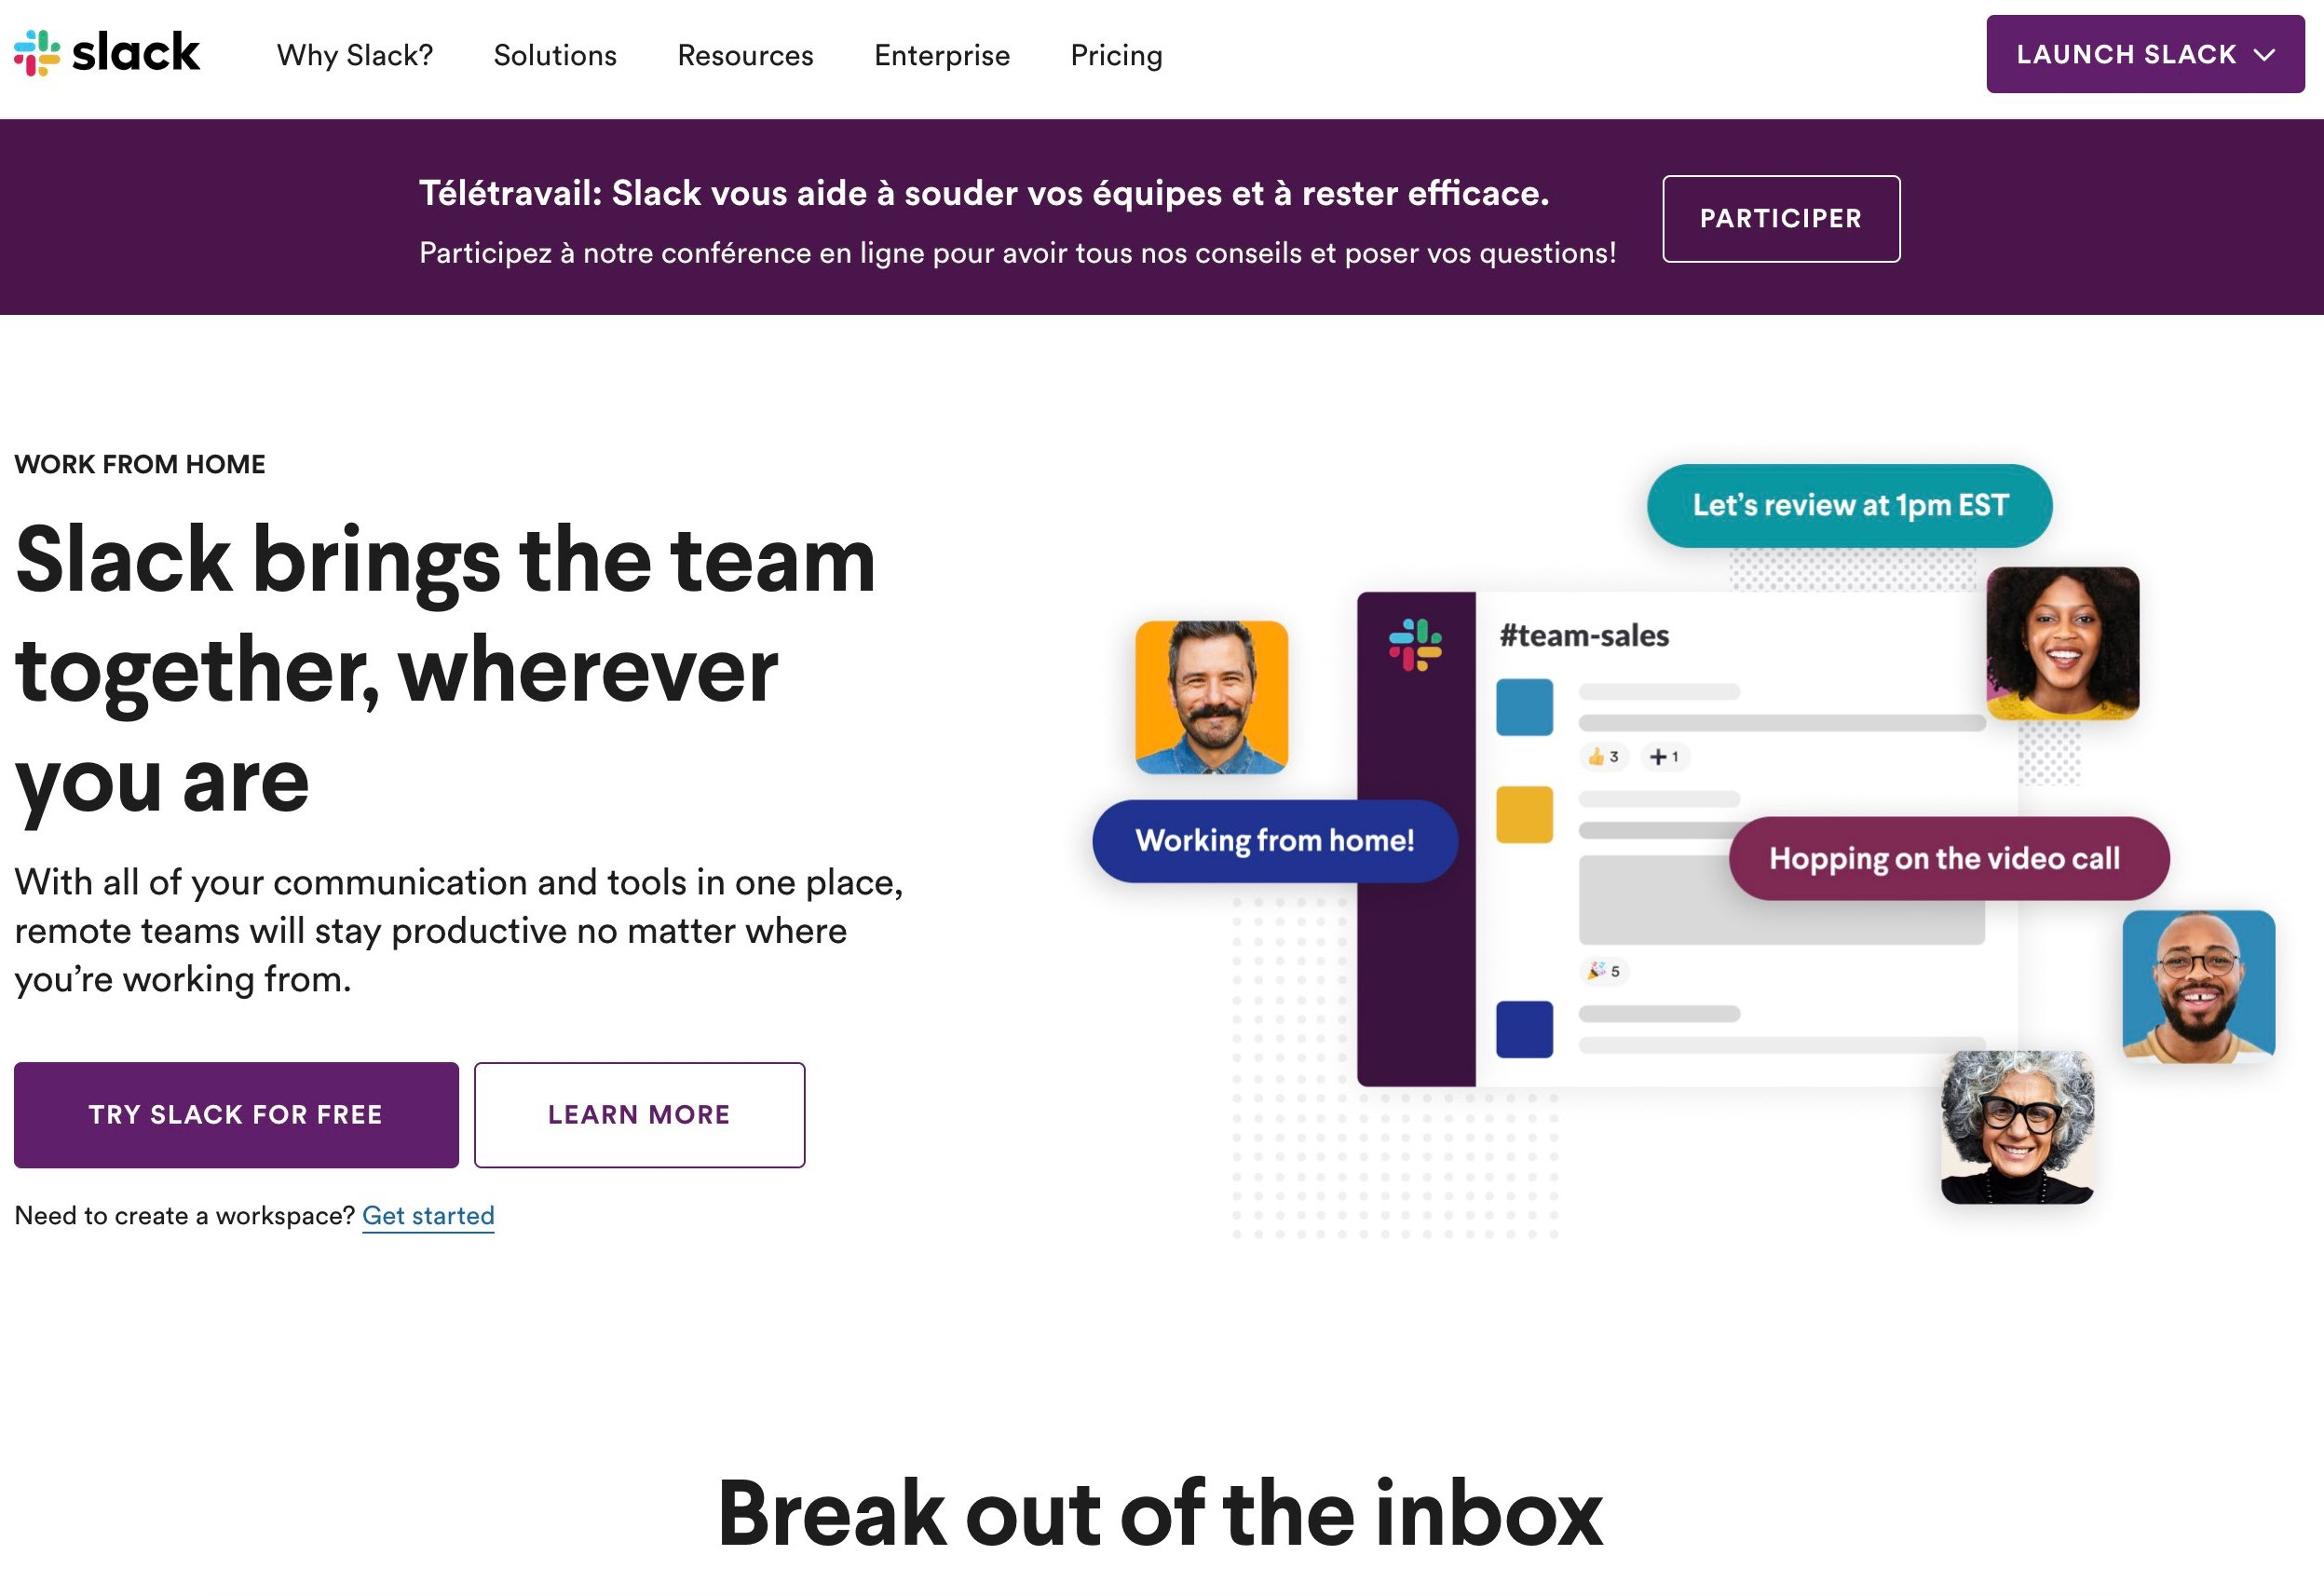 Slack homepage in August 2020